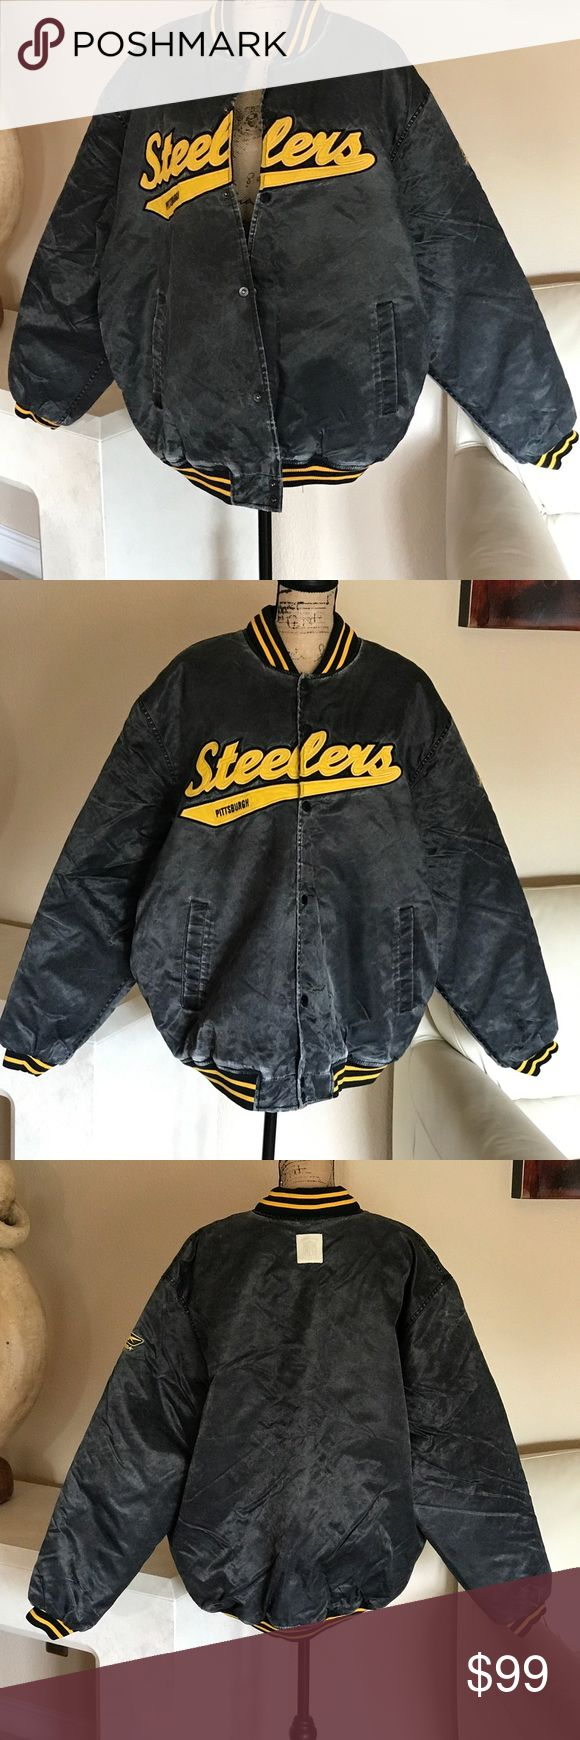 "Pittsburgh Steelers Gridiron Classic Size XL/EX/TG Pittsburgh Steelers Uniquely designed Gridiron jacket BY REEBOK  that resembles worn Steel Workers Jacket. Snap-front closure, quilted look inner shell with zippered front pocket. NEW-NEVER WORN GIFT This is a BIG TALL mans jacket sized XL/EX/TG."" Sleeve length approximately 27.5"" Armpit to armpit measures approximately 33"" length of Jacket is approximately 32"" Reebok Jackets & Coats Performance Jackets"